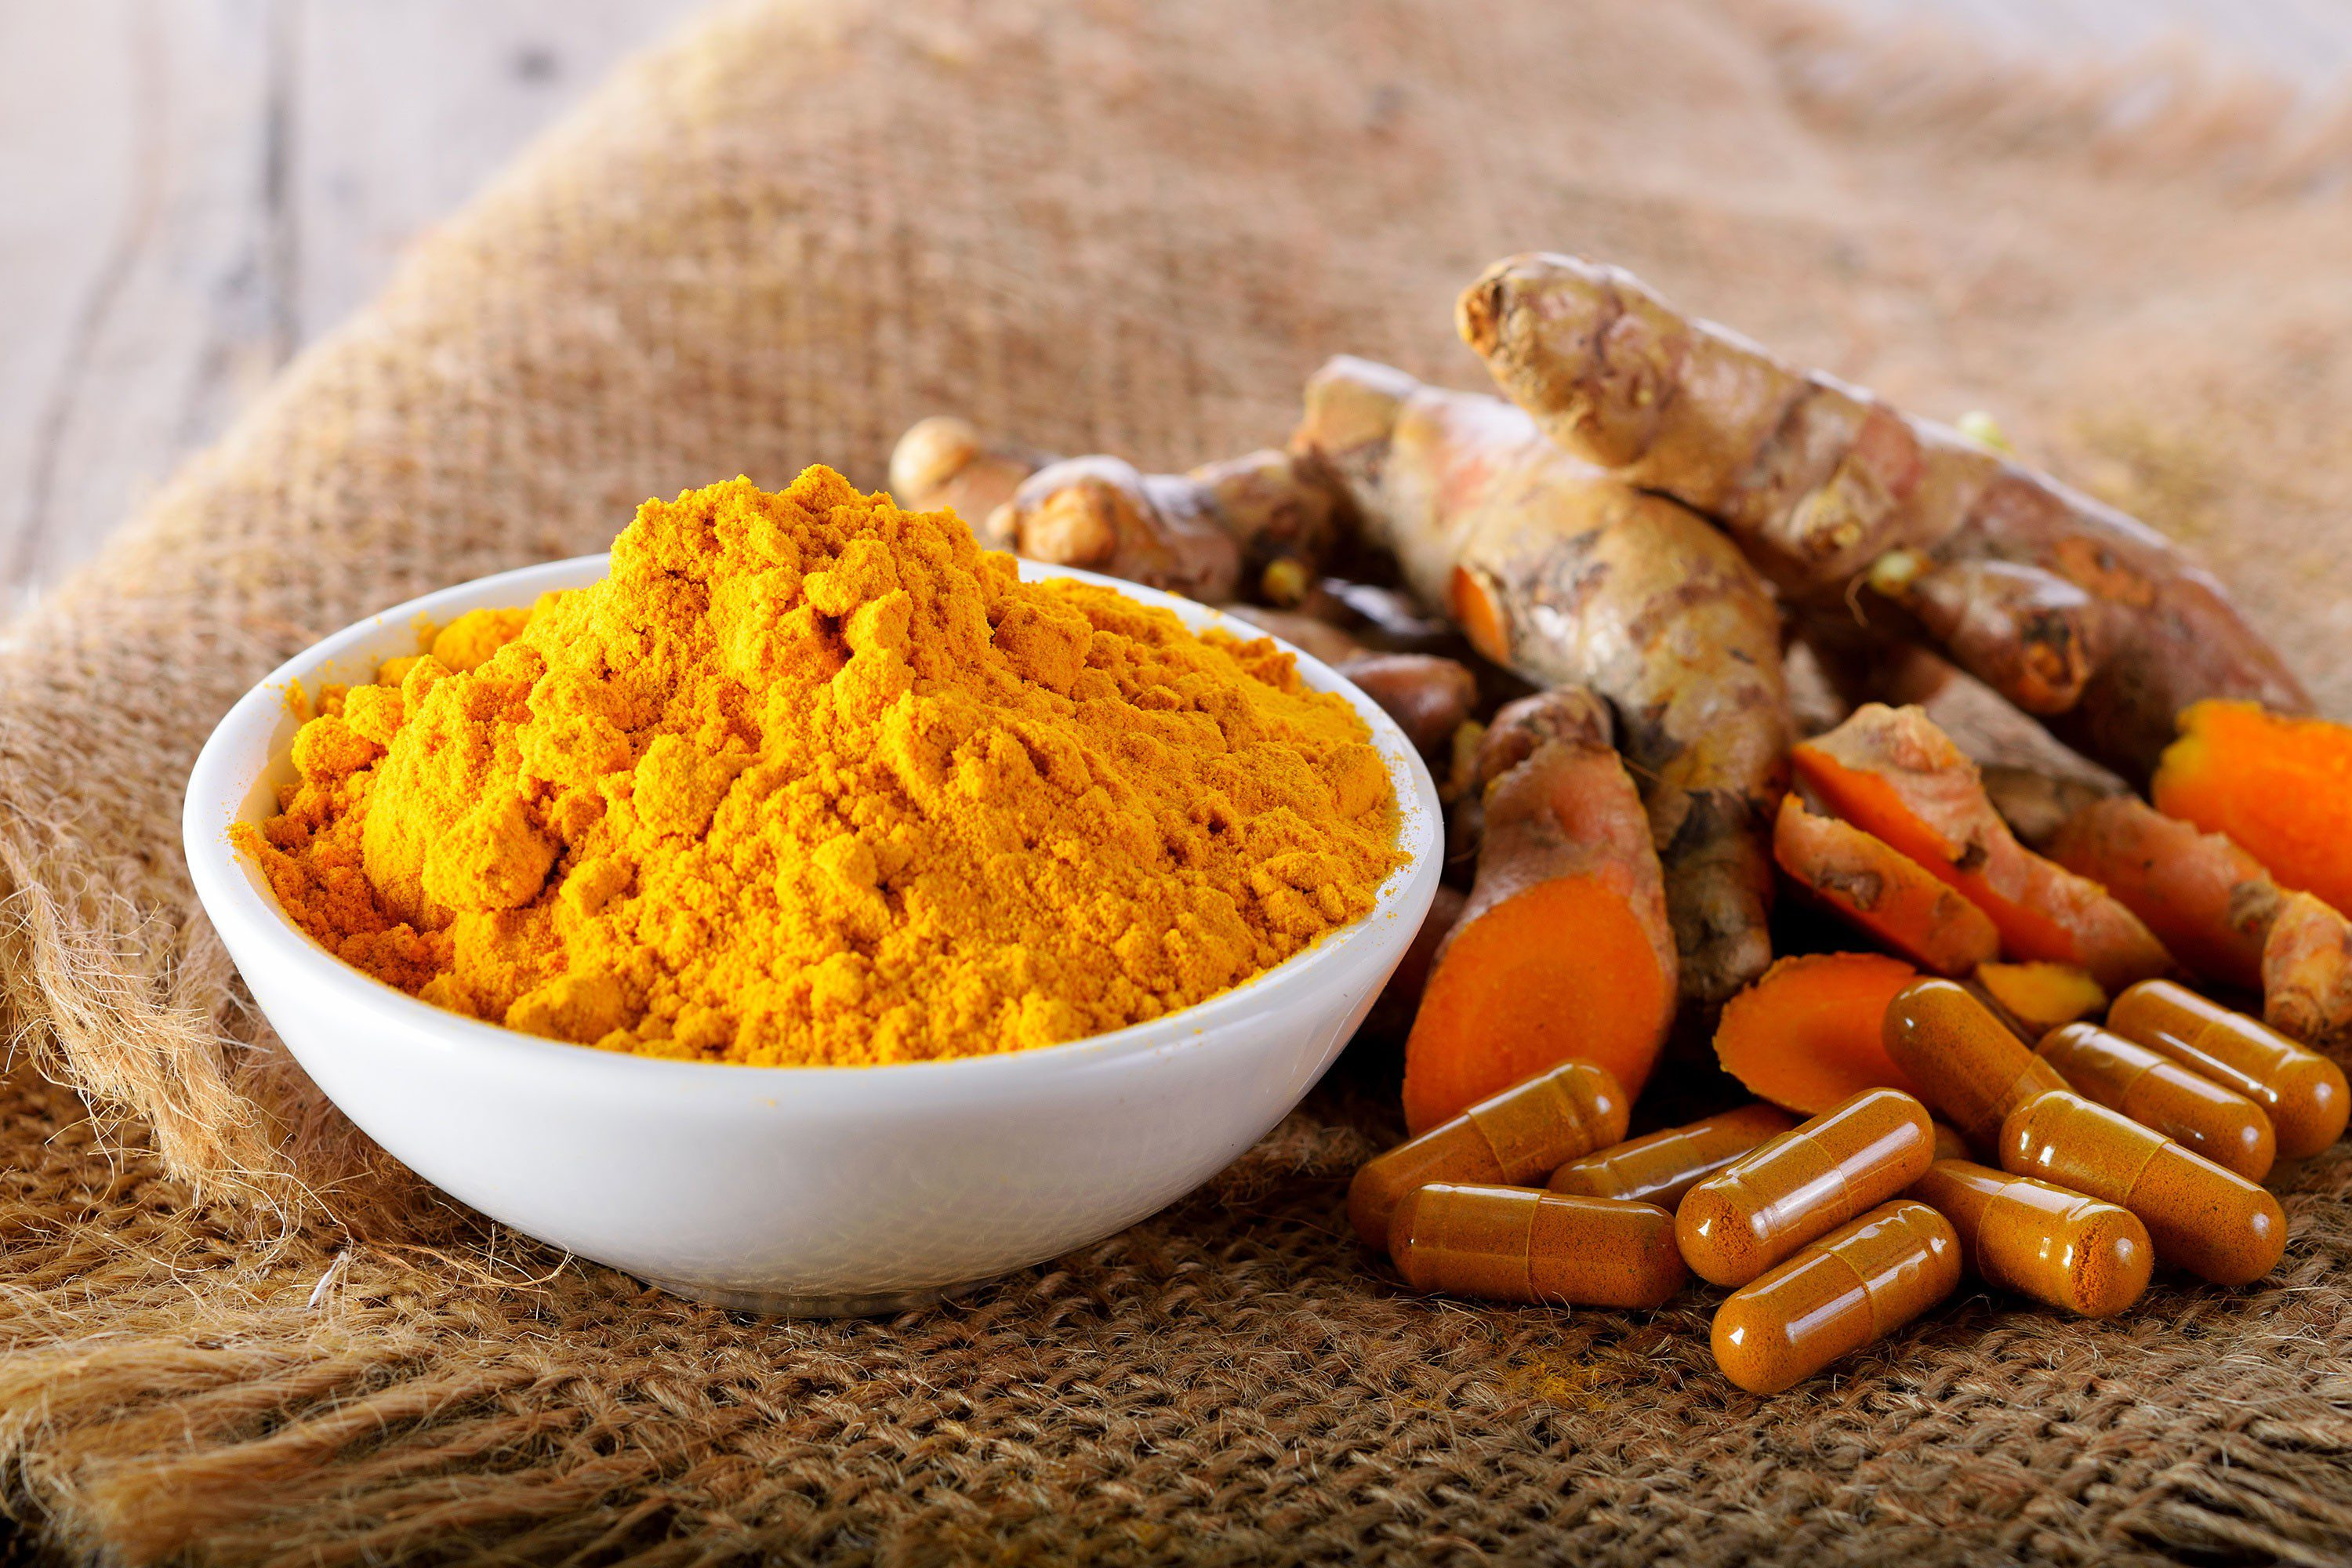 Functional Neurology: Health Benefits and Risks of Turmeric   El Paso, TX Chiropractor